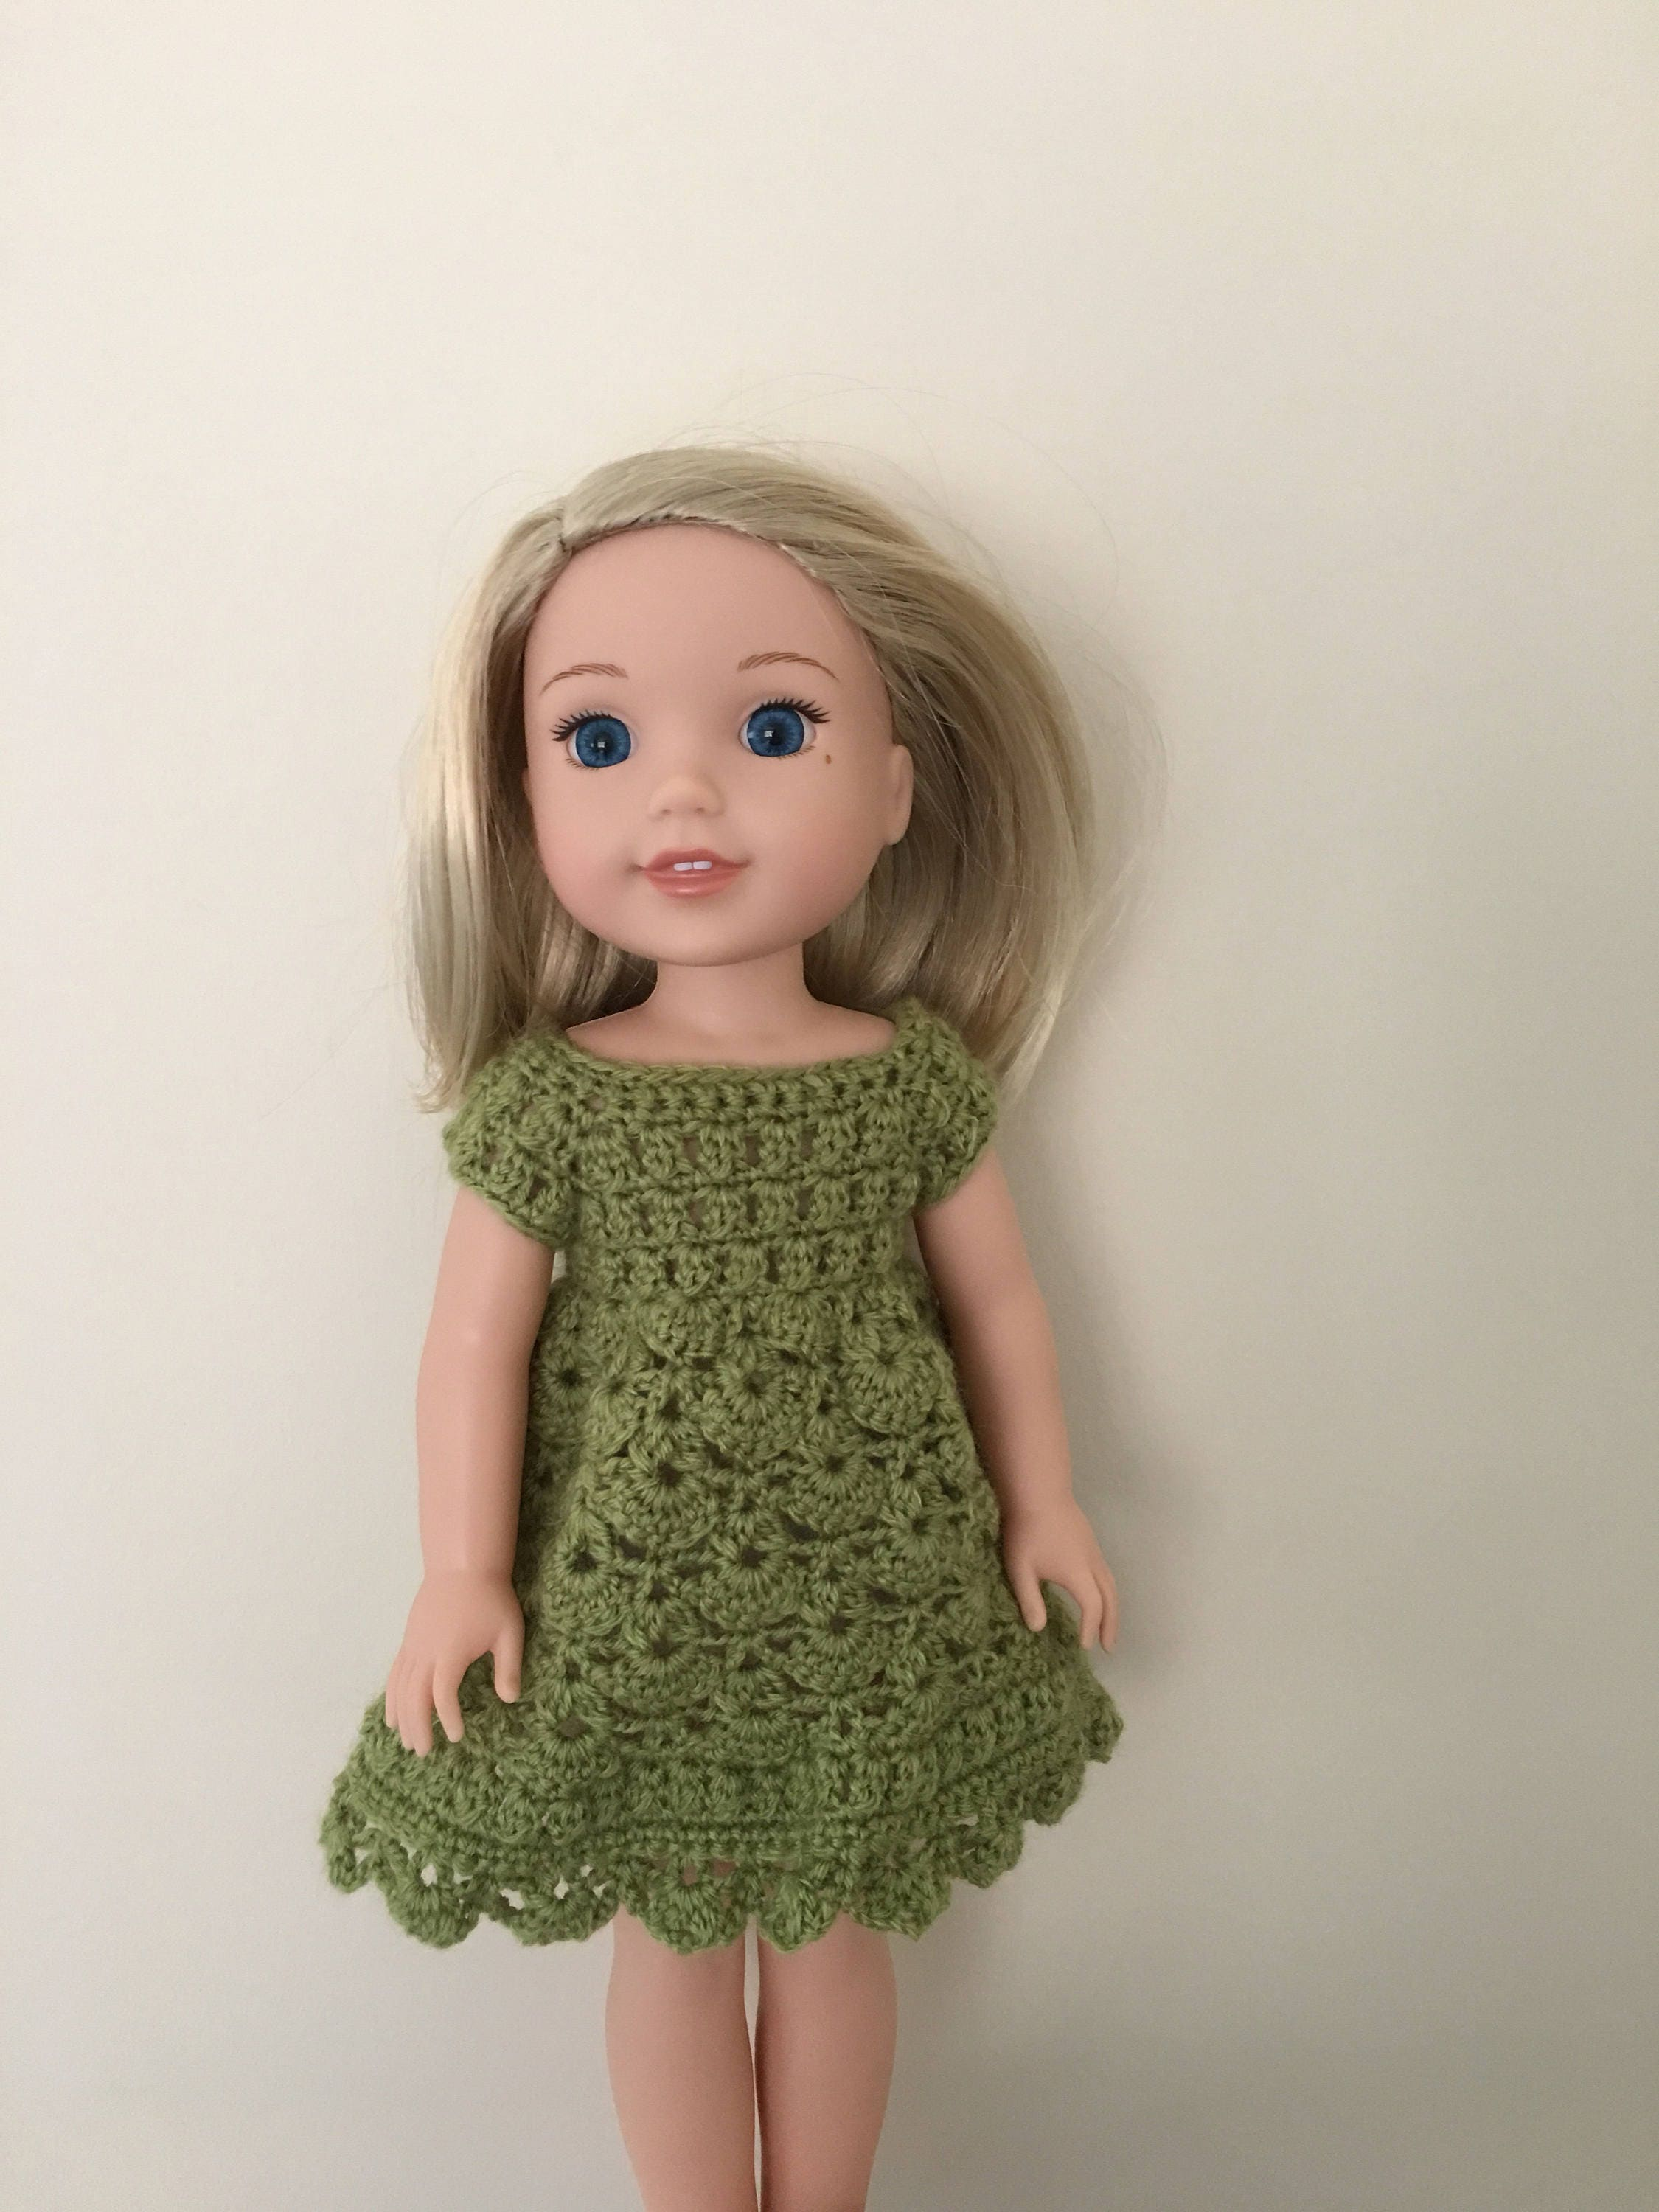 Green dress for 14.5 doll such as American Girl Wellie Wishers. Handmade crocheted.